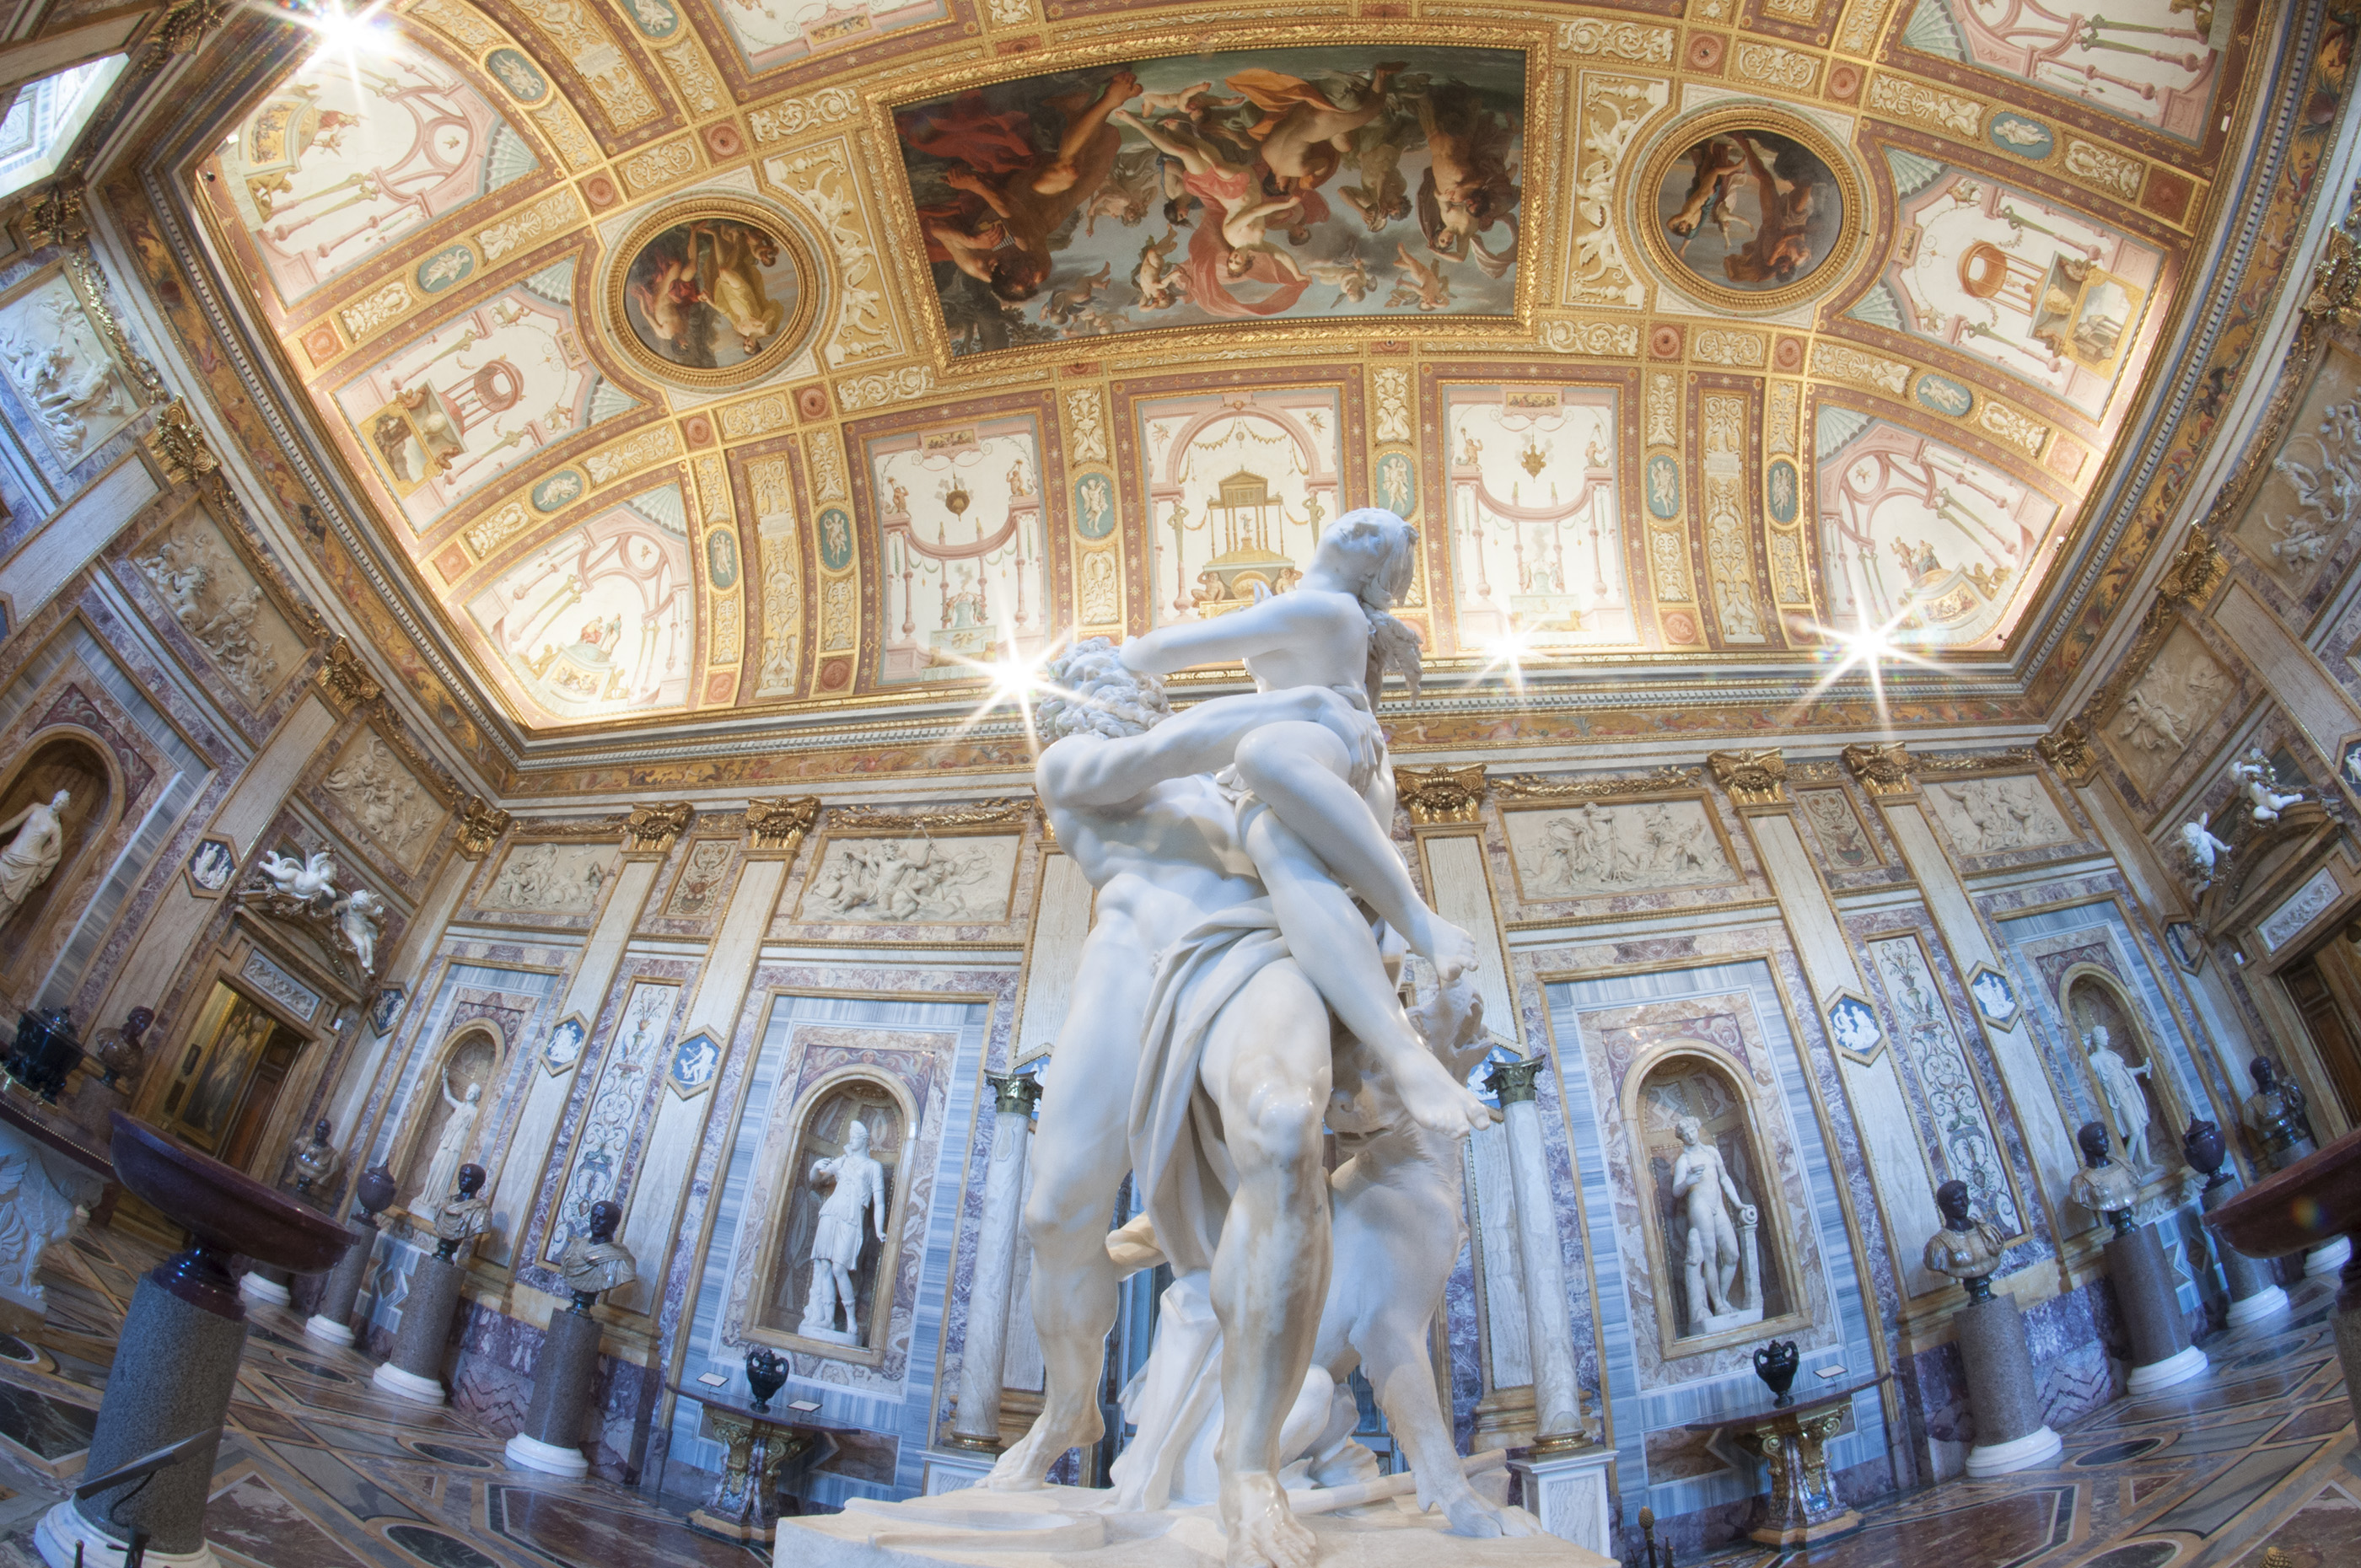 Galleria Borghese Rome, Borghese Week: March 31 to April 6, 2014   Walks of Italy Blog